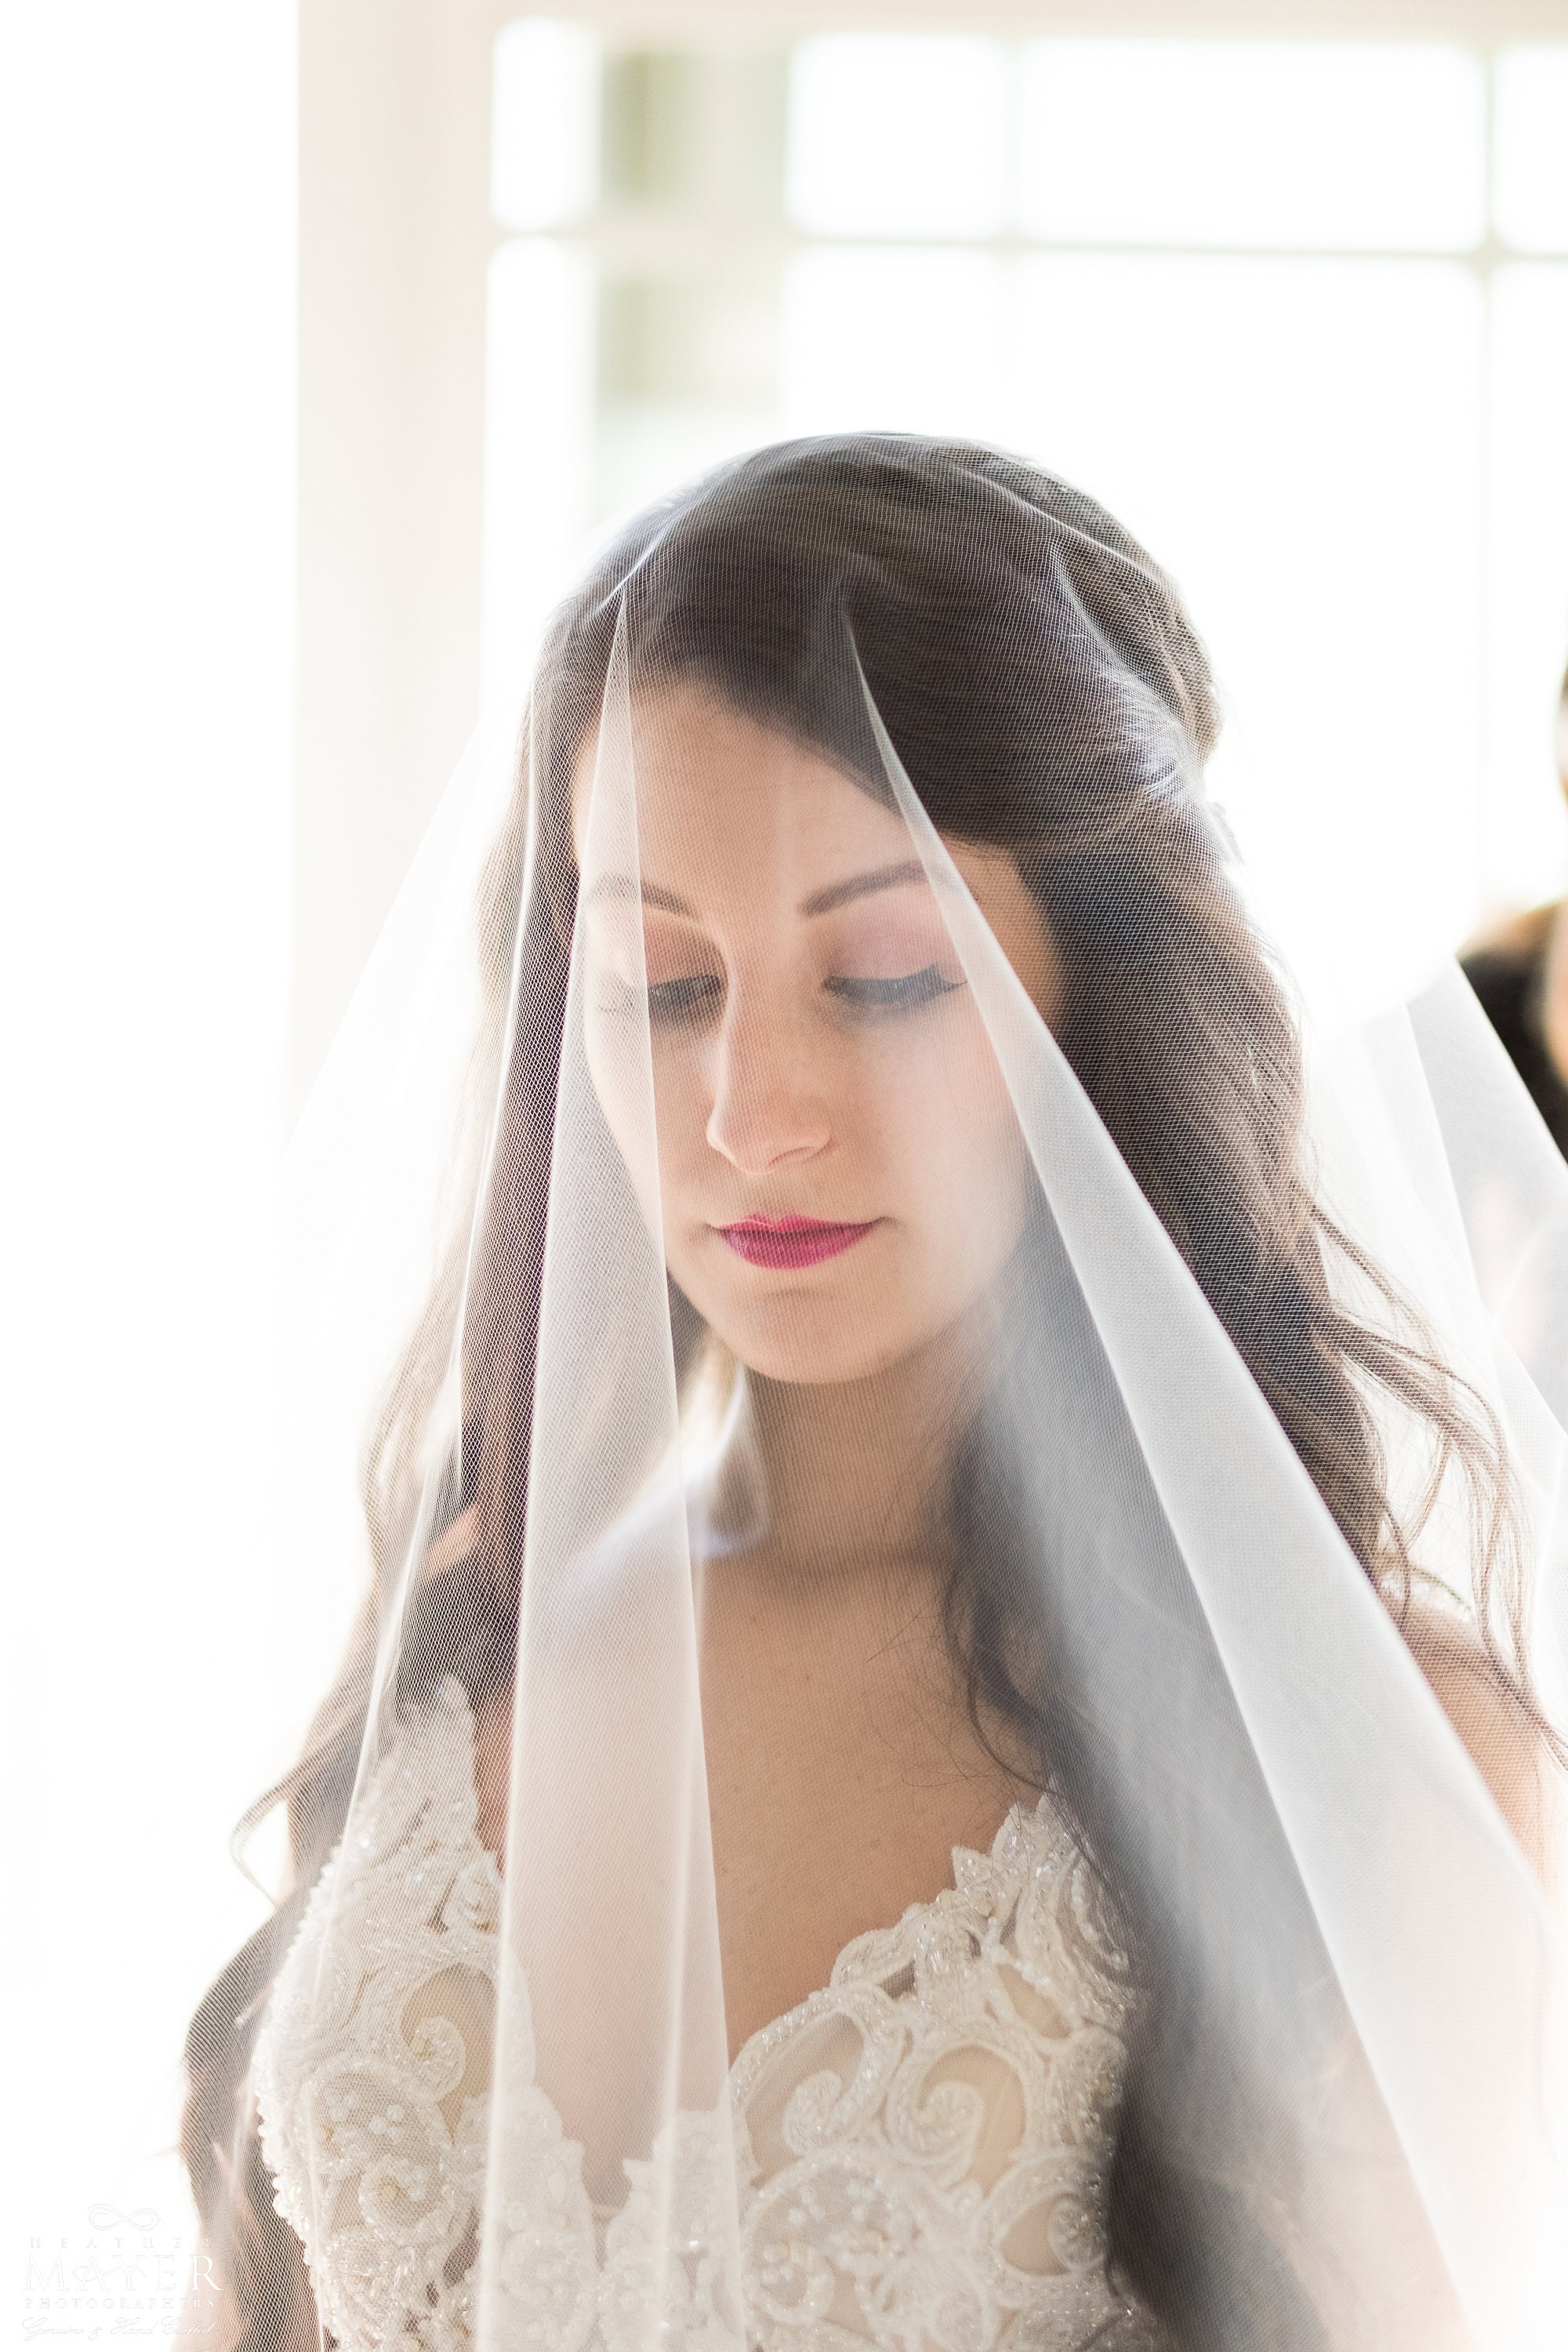 Cathedral Veil Drop Vail Wedding Vale Bridal Veil Colored